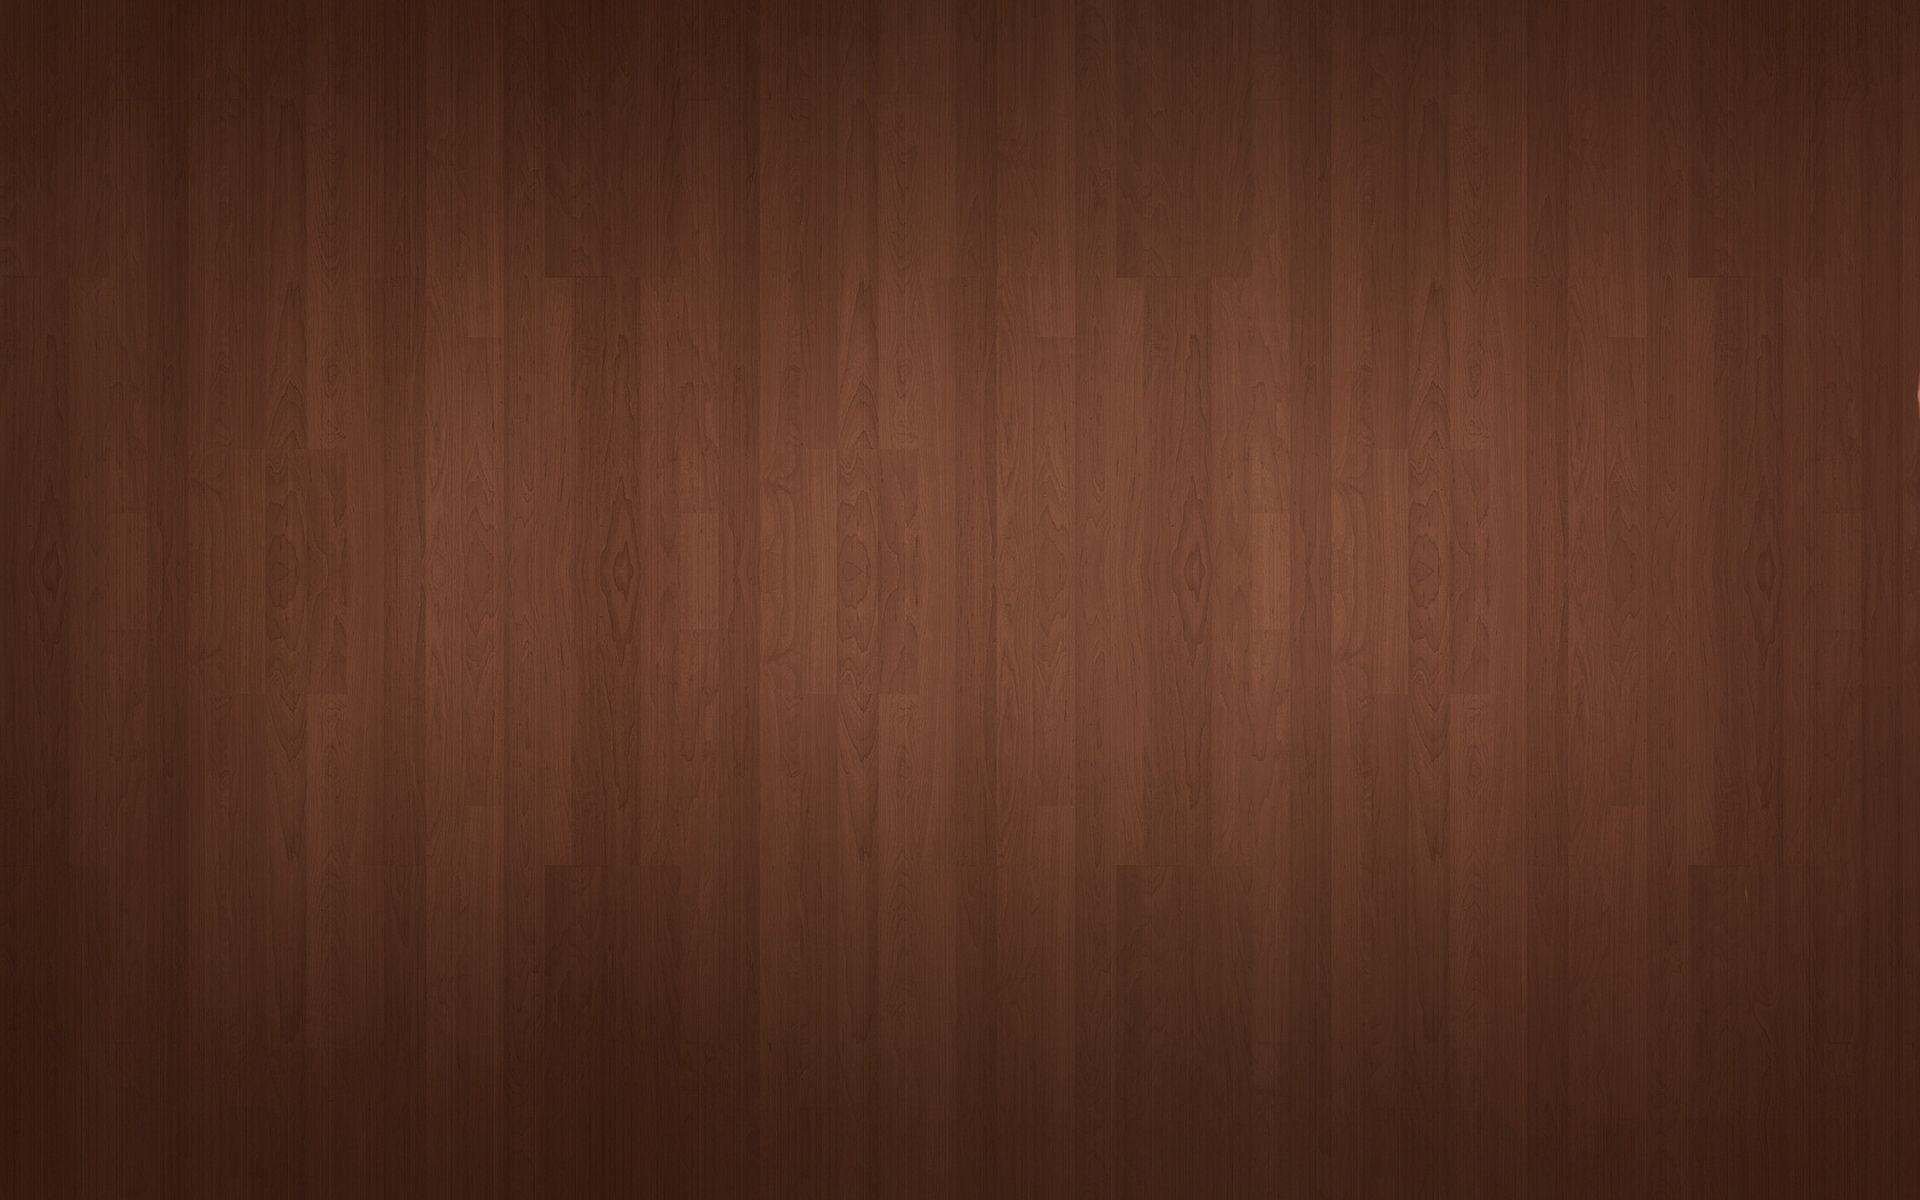 68604 Screensavers and Wallpapers Wooden for phone. Download Background, Wood, Wooden, Texture, Textures, Planks, Board pictures for free